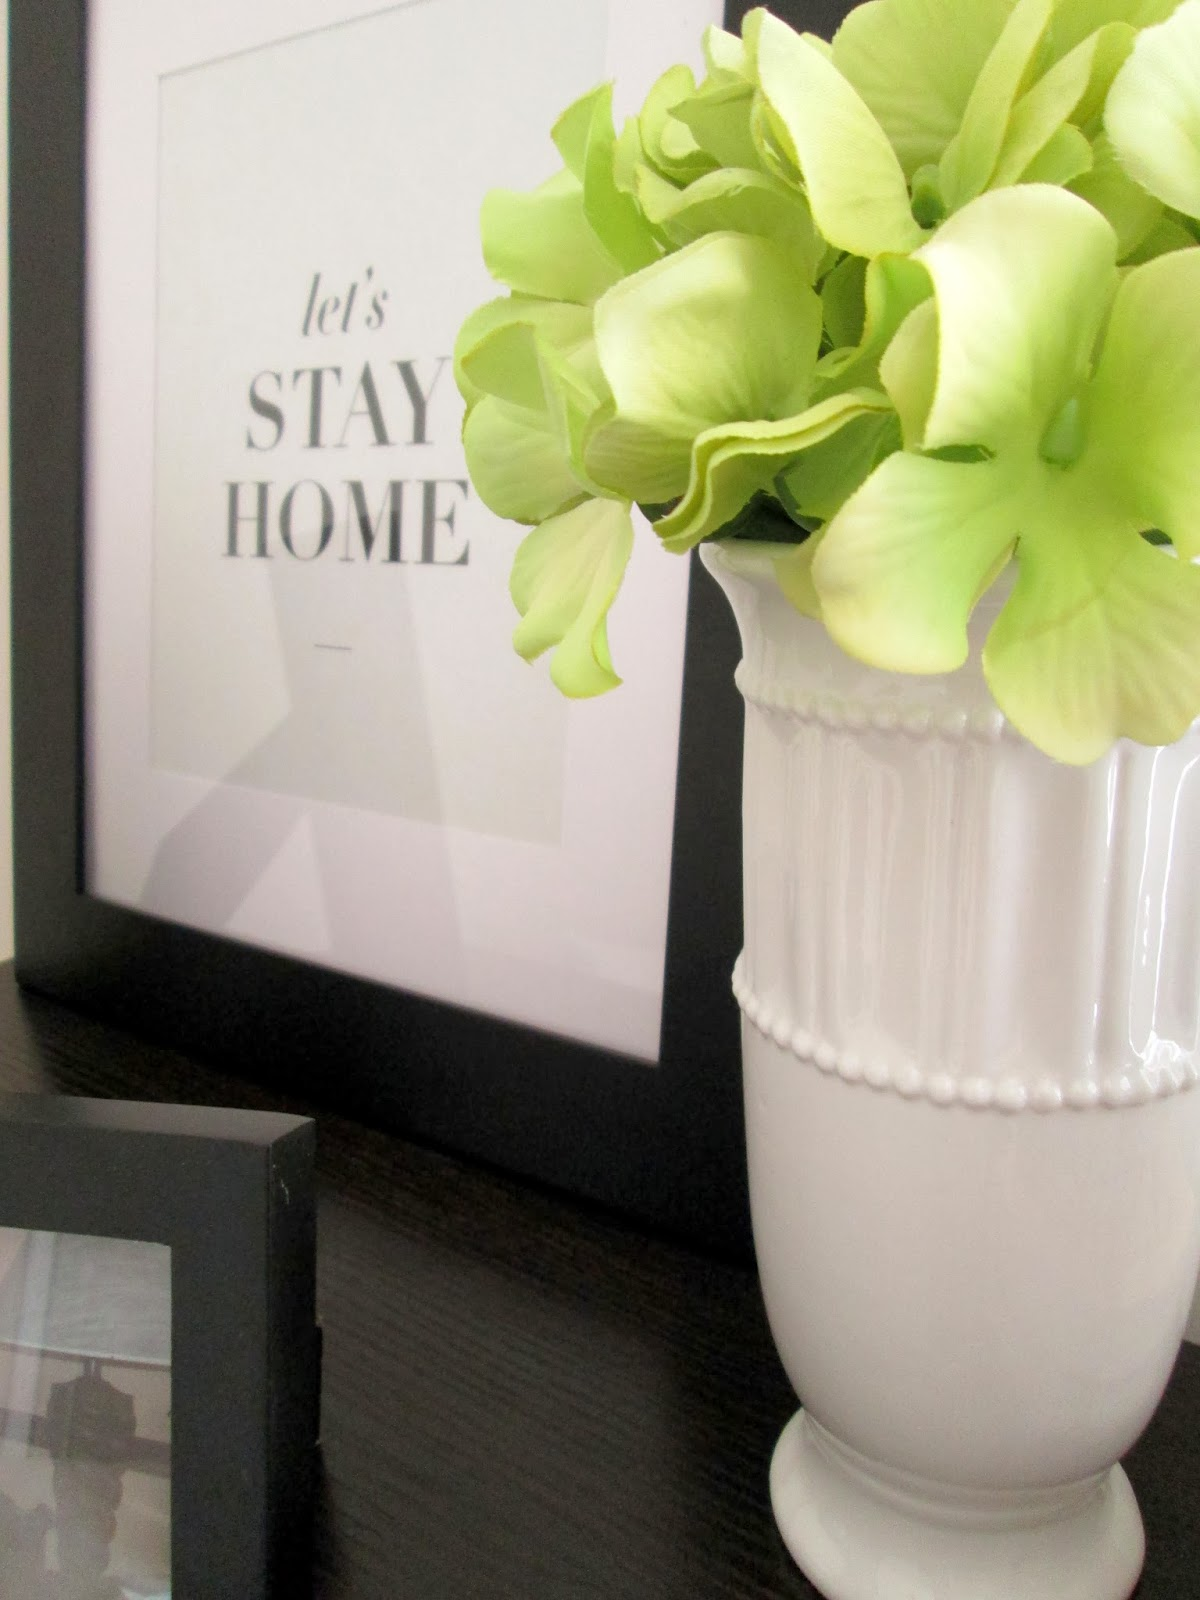 Bookshelf decor with free printable and vase with hydrangeas